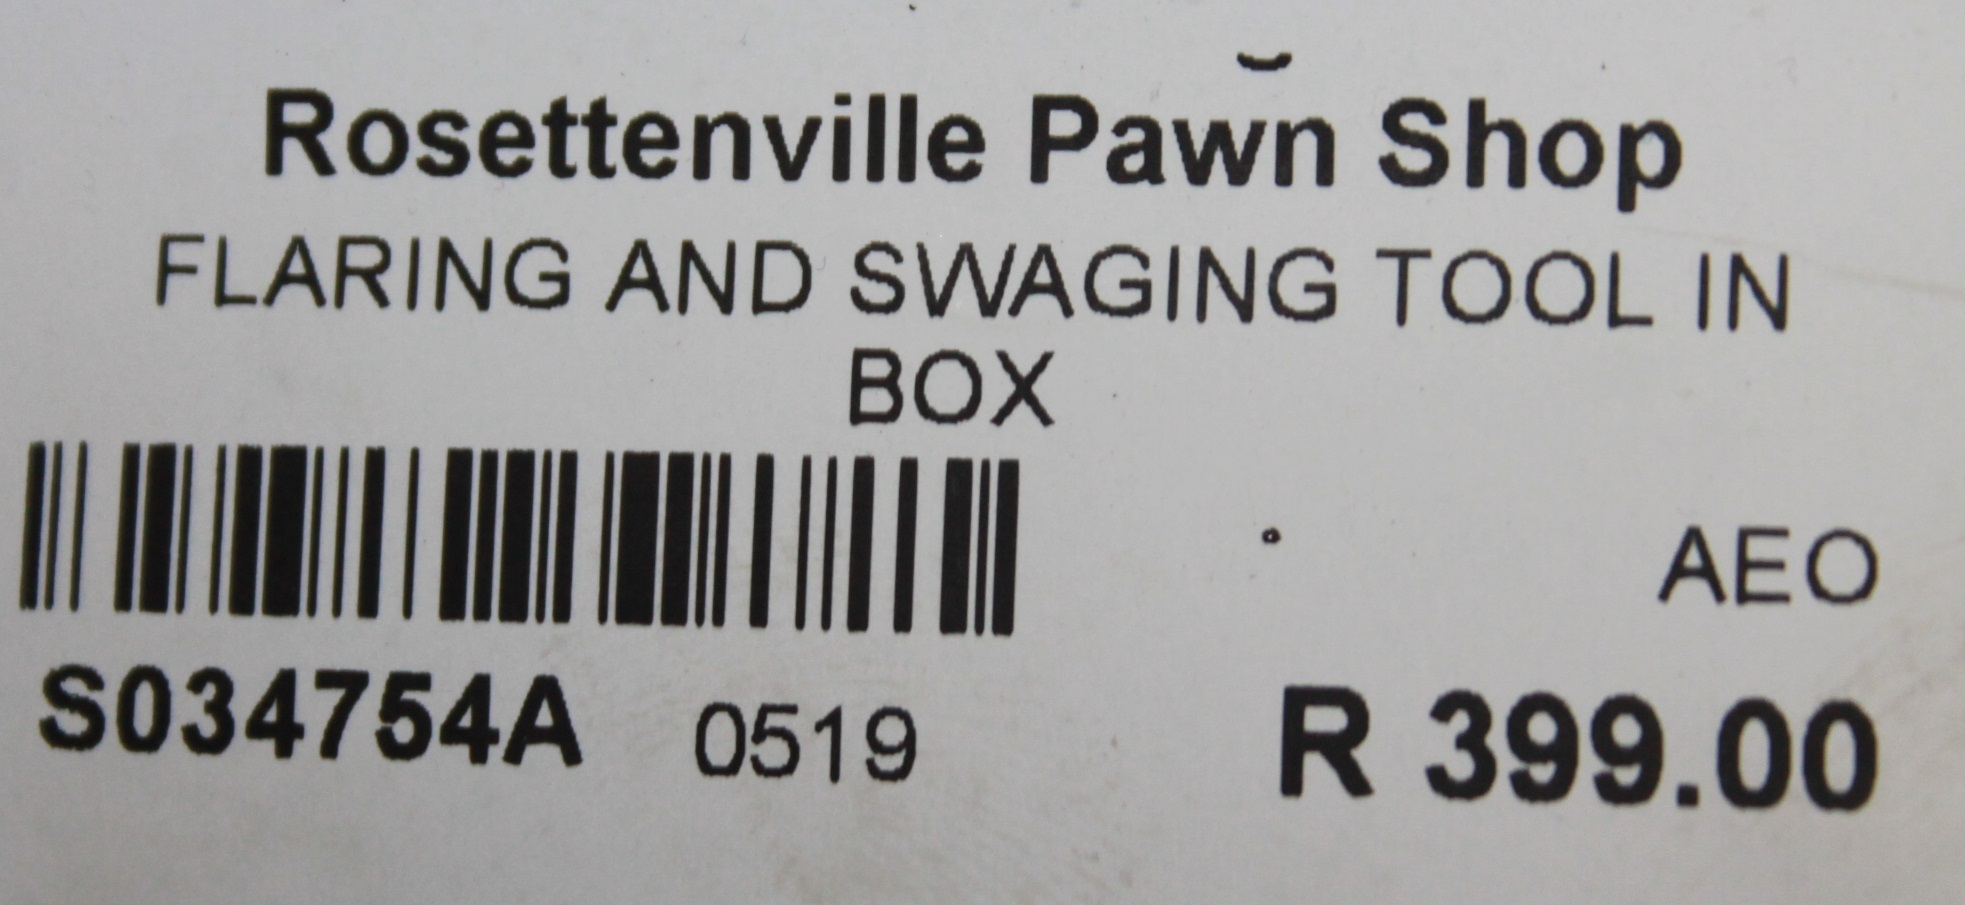 S034754A Flaring and swaging tool in box #Rosettenvillepawnshop